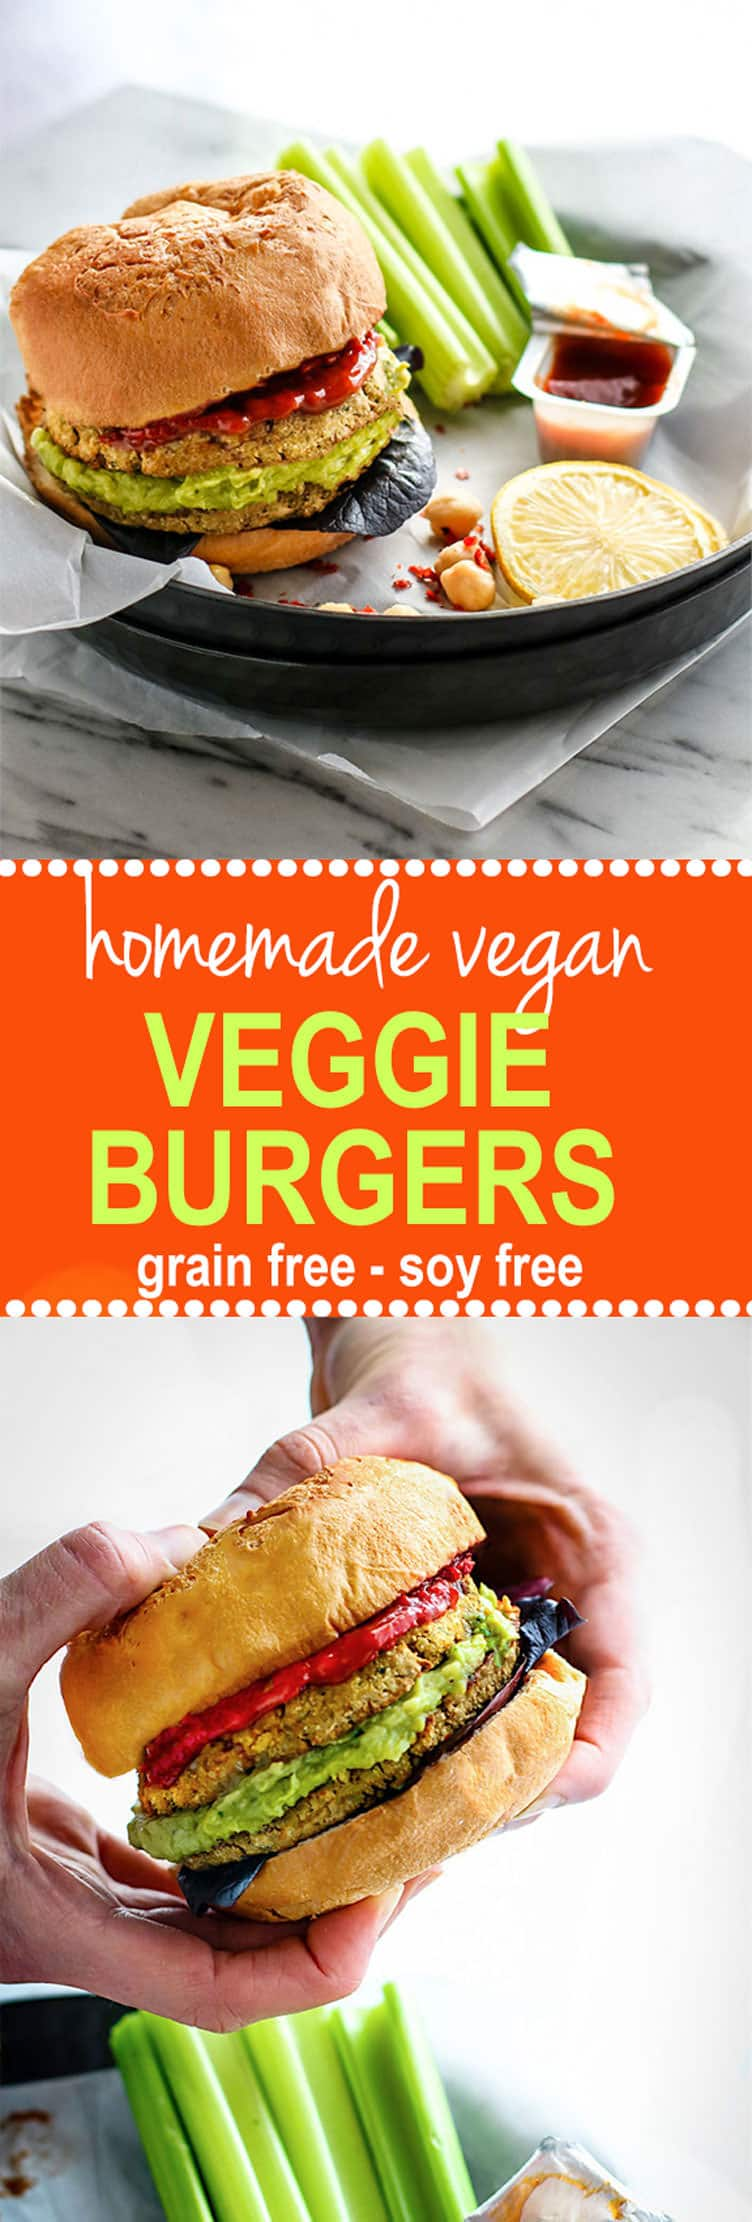 Freezer Friendly Soy Free Vegan Veggie Burgers. Gluten free Homemade Vegan Veggie burgers made with grain free veggie packed patties! Simple Real food ingredients, easy to make, and super delicious!